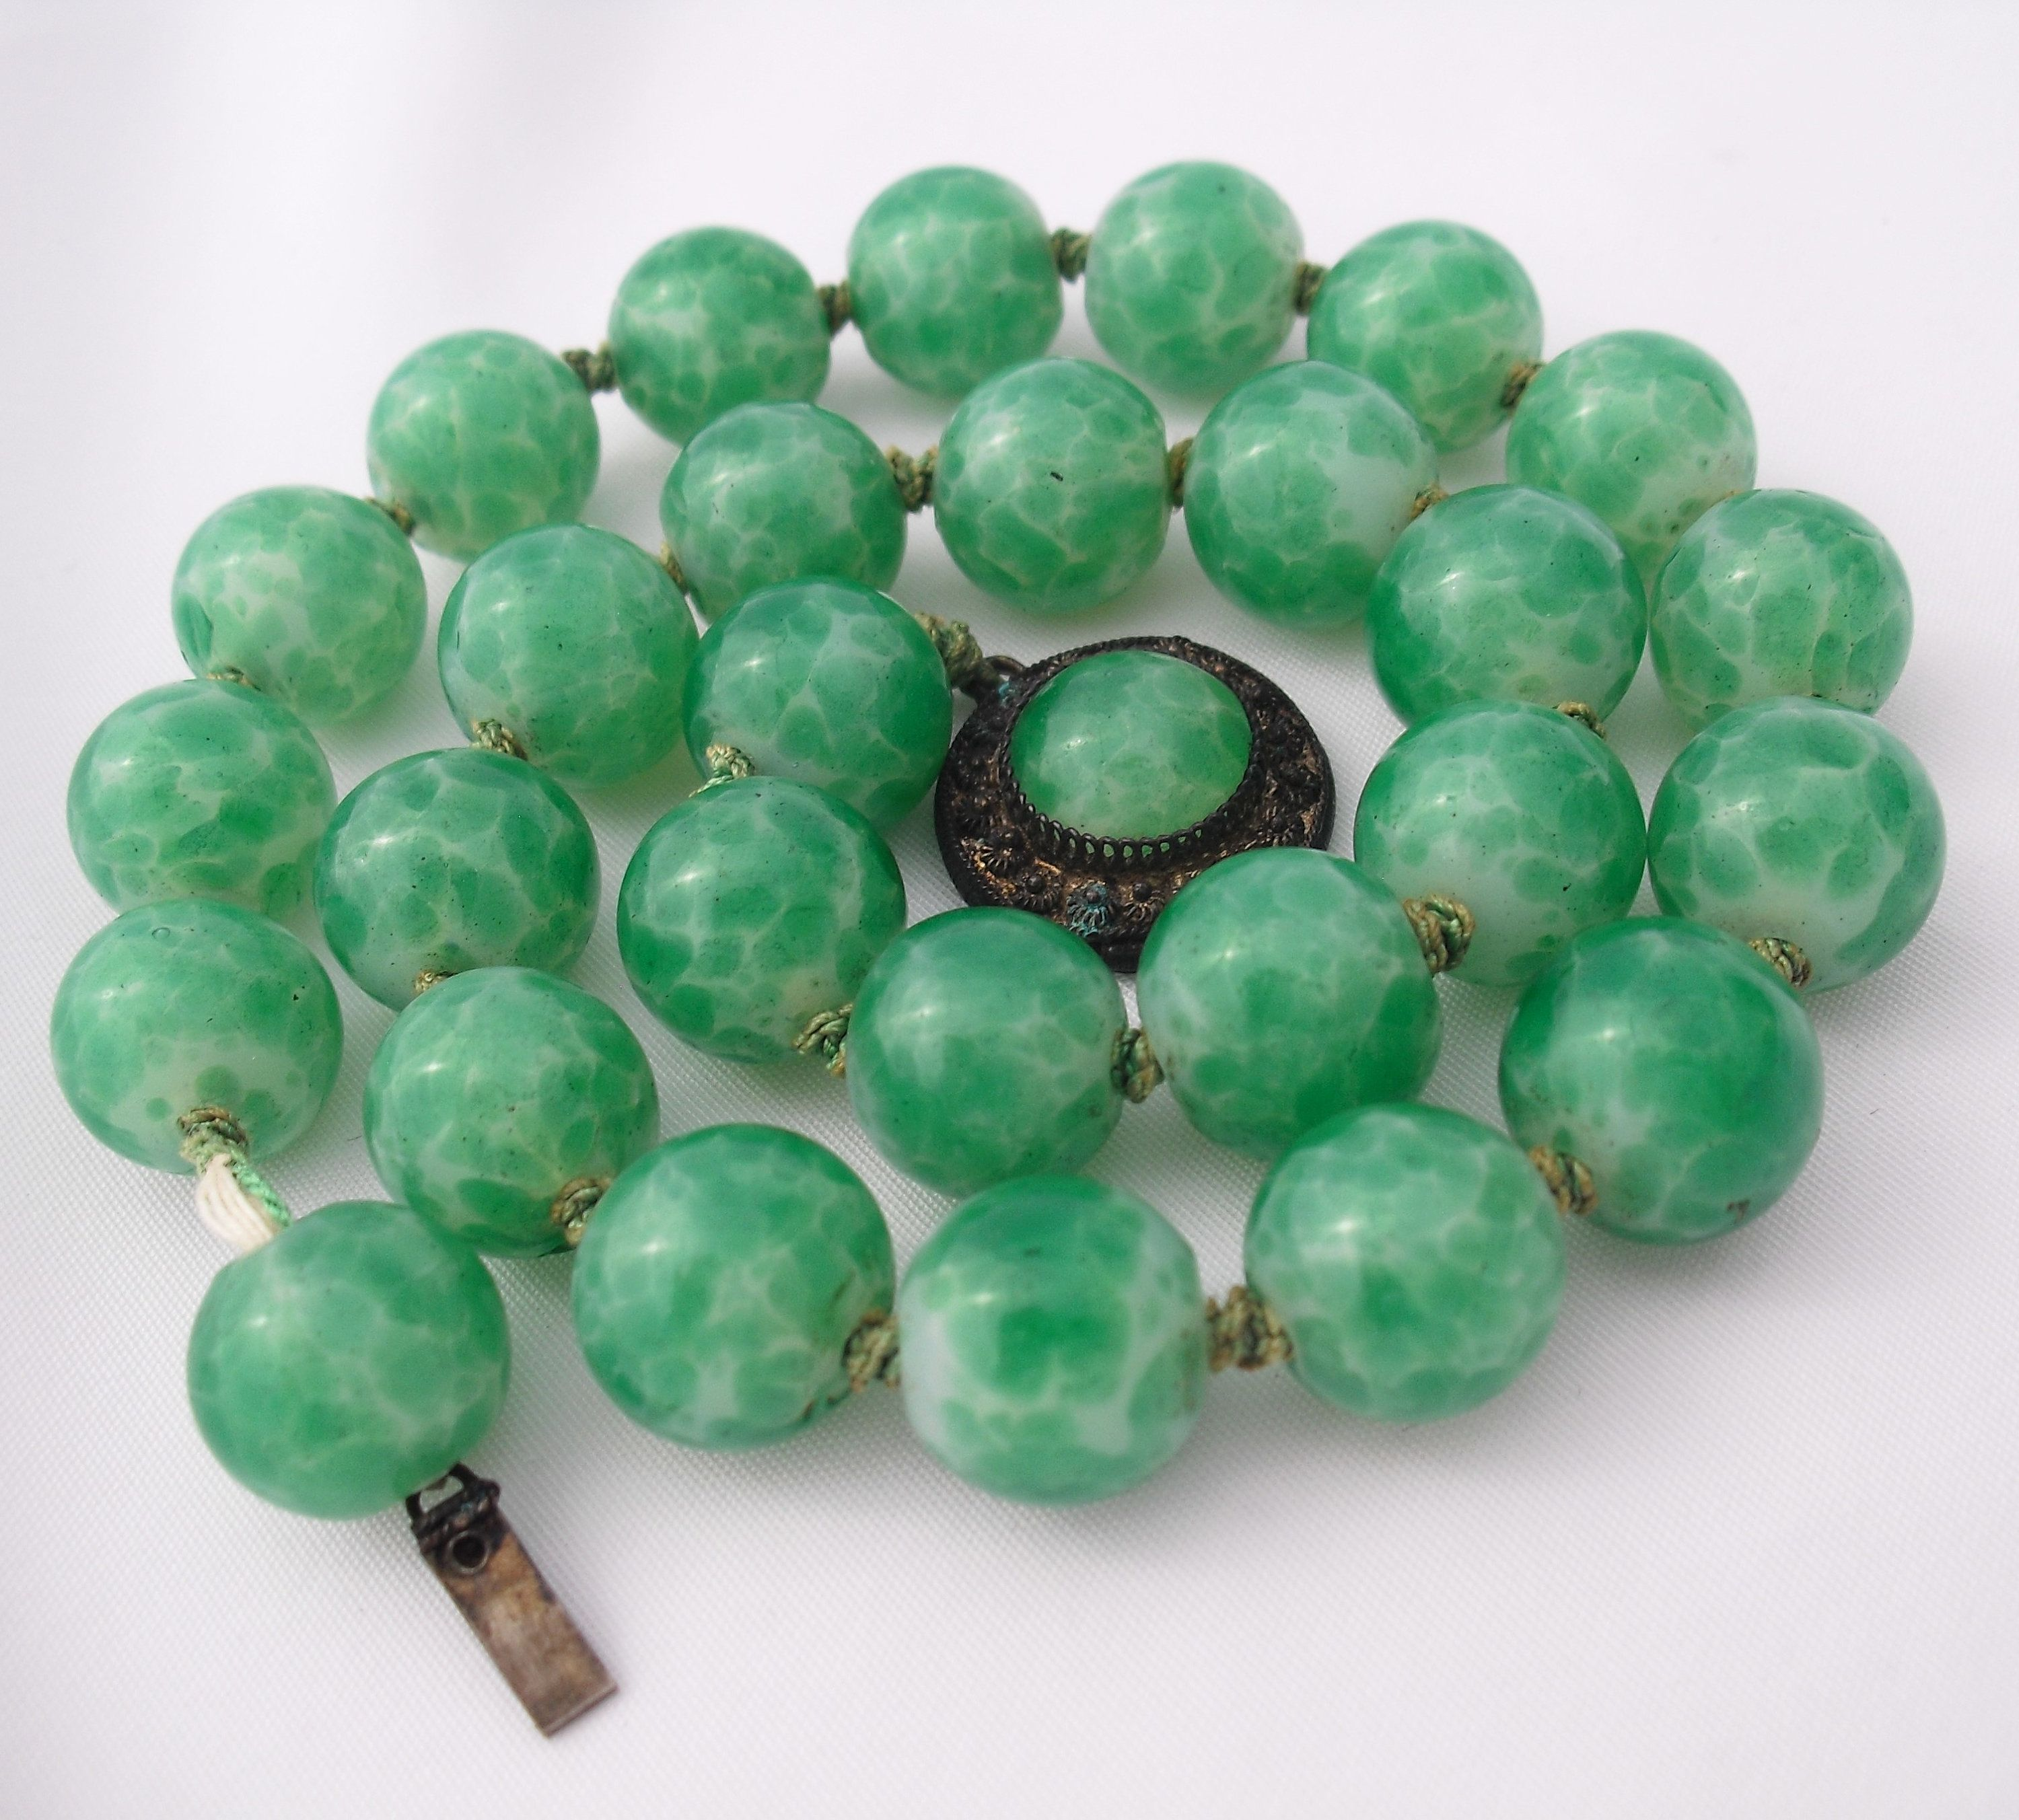 wearrings necklace chinese product jade w earrings